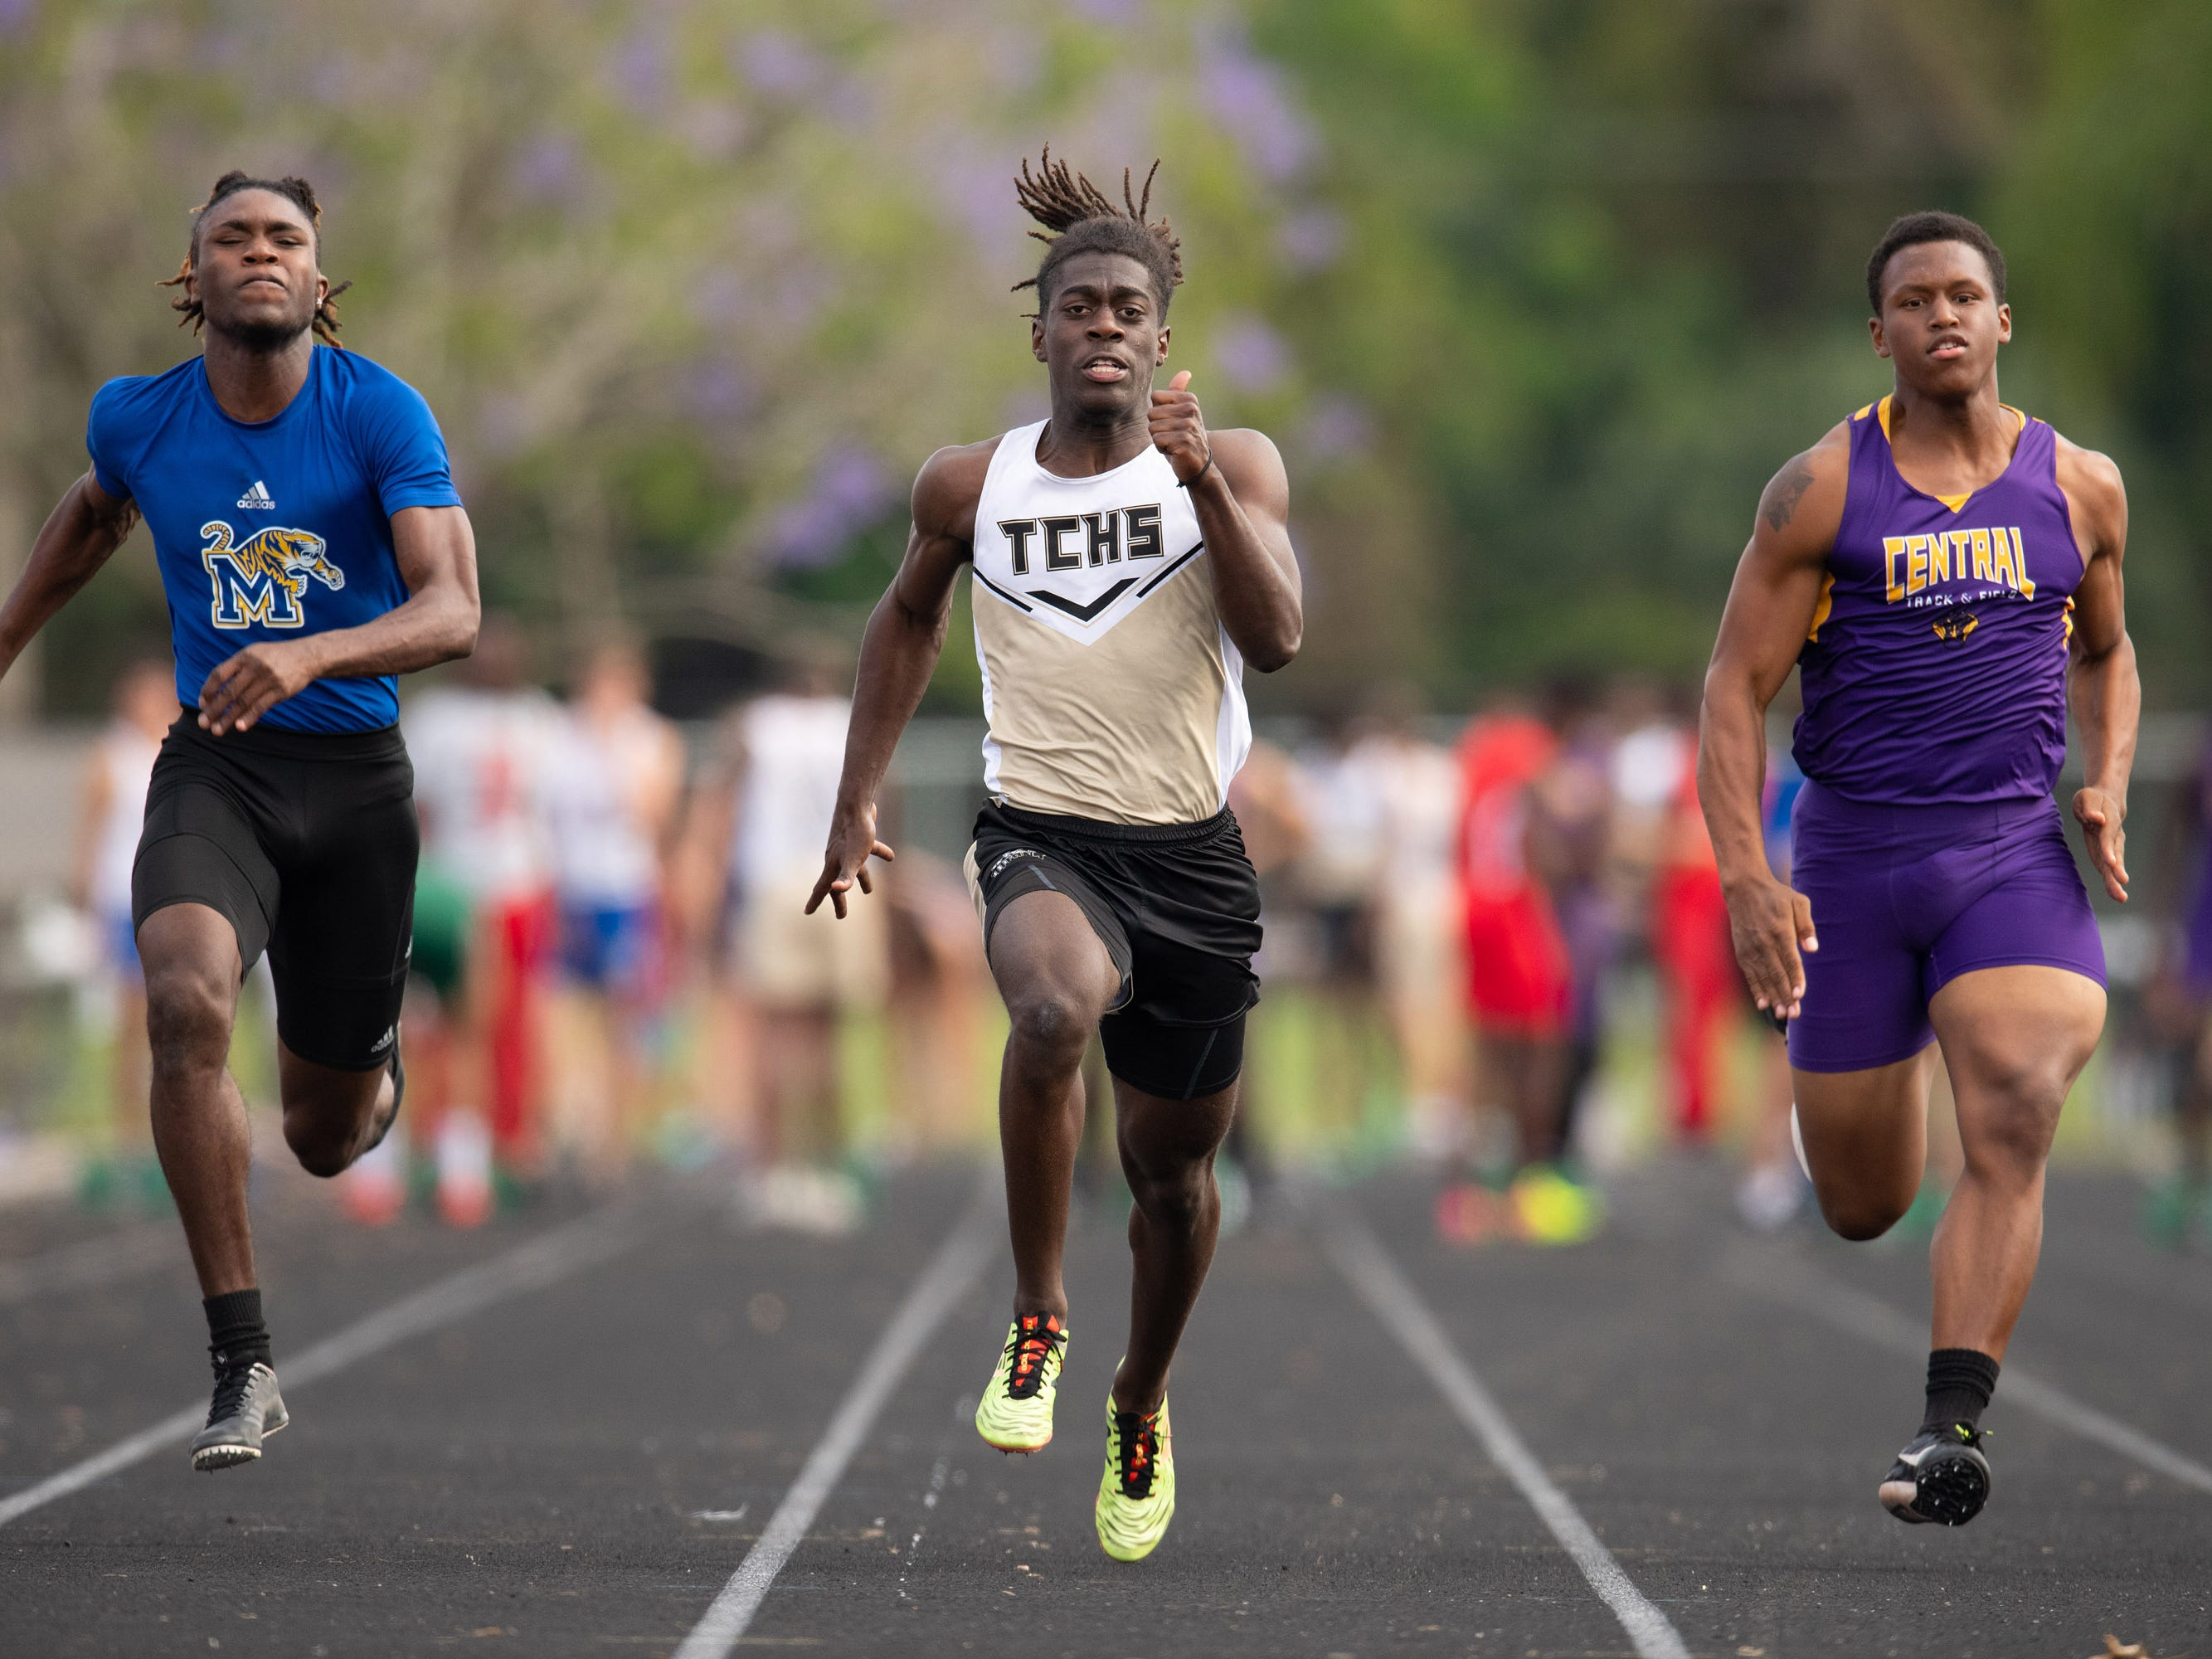 Martin County's Fletcher Marshall (left), Treasure Coast's Sean Miller (center) and Fort Pierce Central's Kyle Hall compete in the 100 meter dash preliminaries during the District 9-4A Track Meet at Martin County High School on Wednesday, April 10, 2019, in Stuart. Miller won the heat.